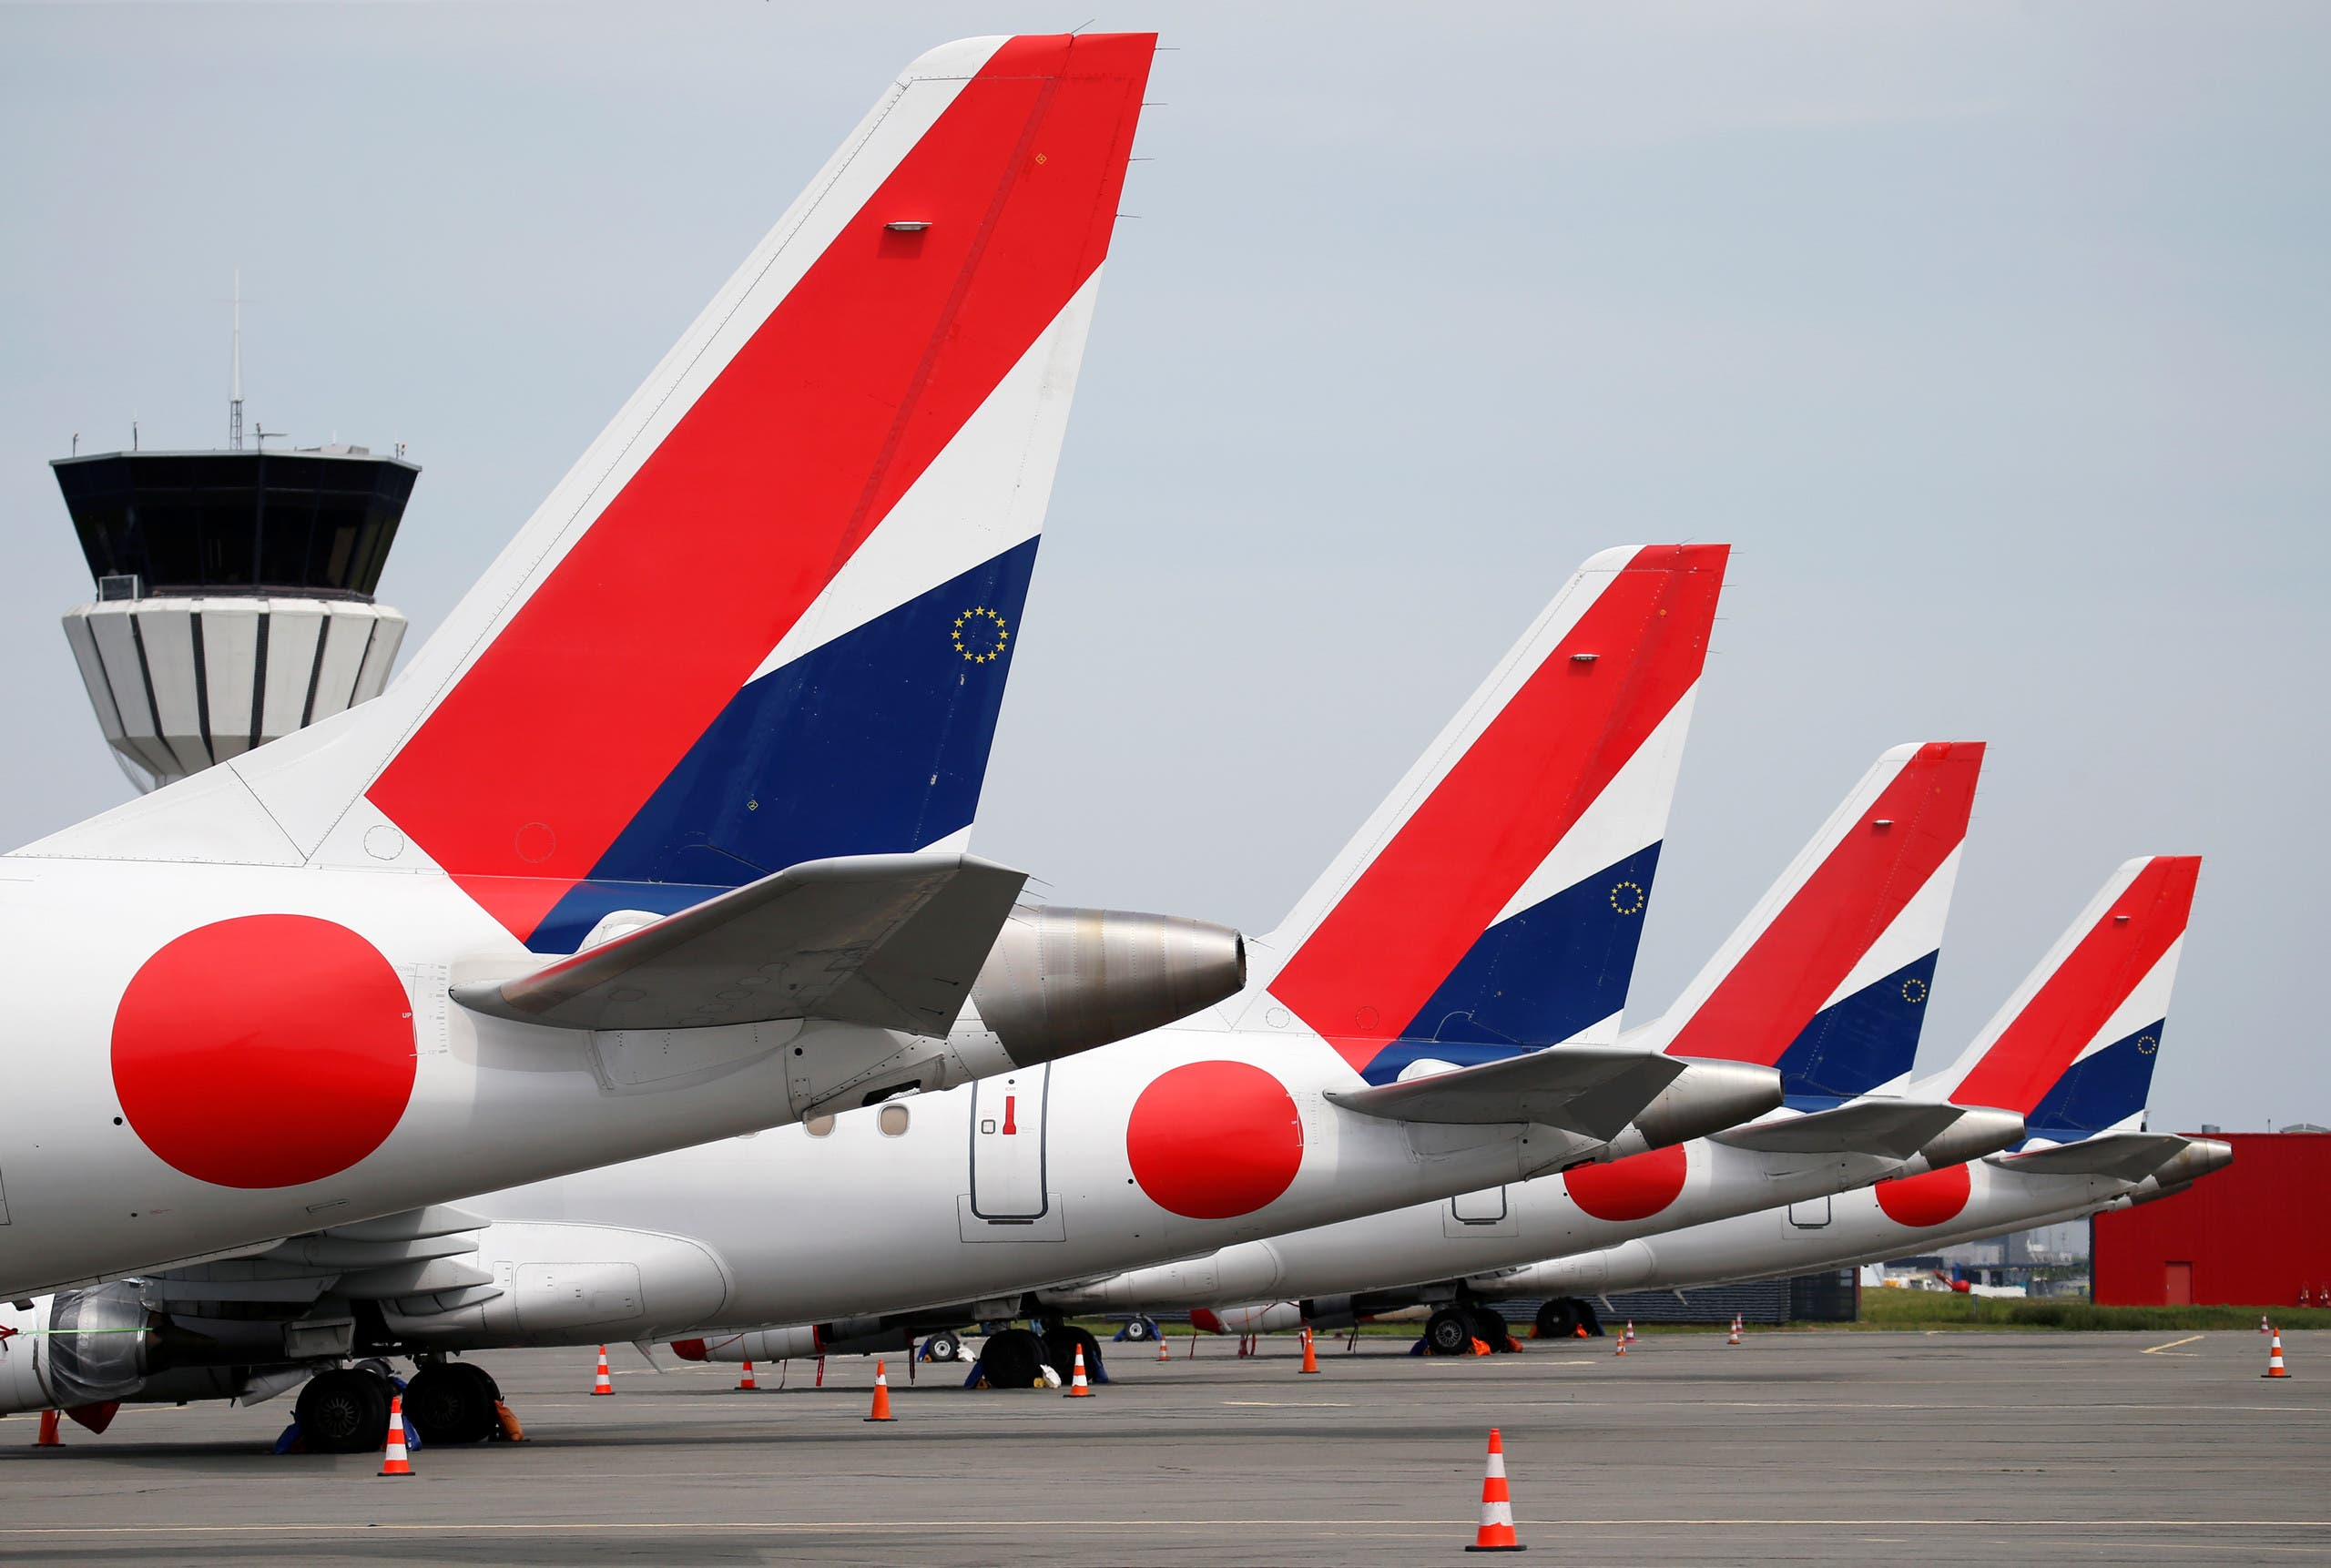 HOP! for AIRFRANCE Embraer 170 aircrafts are parked on the tarmac at Lille-Lesquin Airport following the coronavirus disease (COVID-19) outbreak, in Lesquin, France, May 7, 2020. (File photo: Reuters)